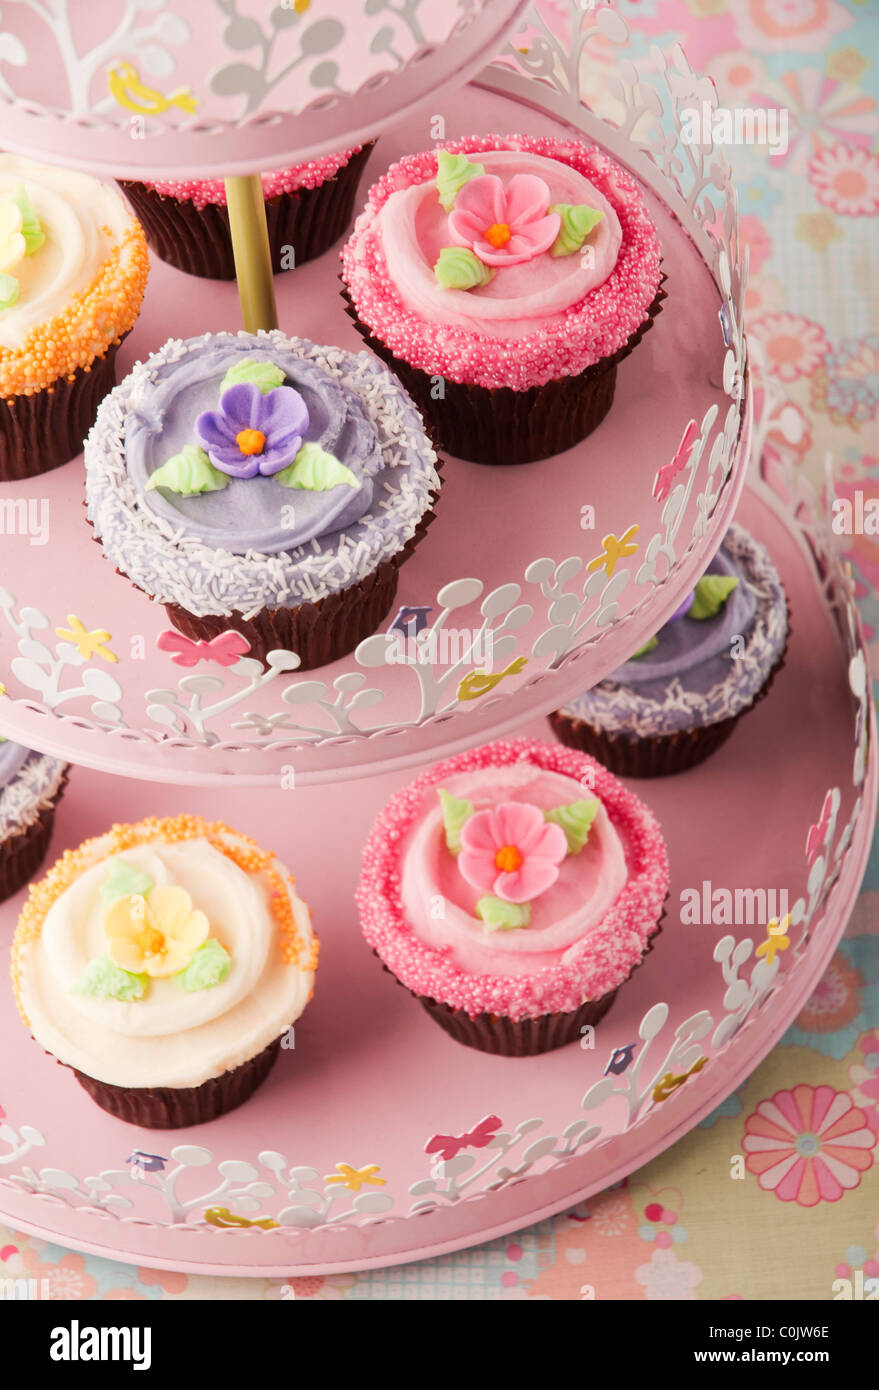 pink yellow purple coloured cup cakes on stand - Stock Image